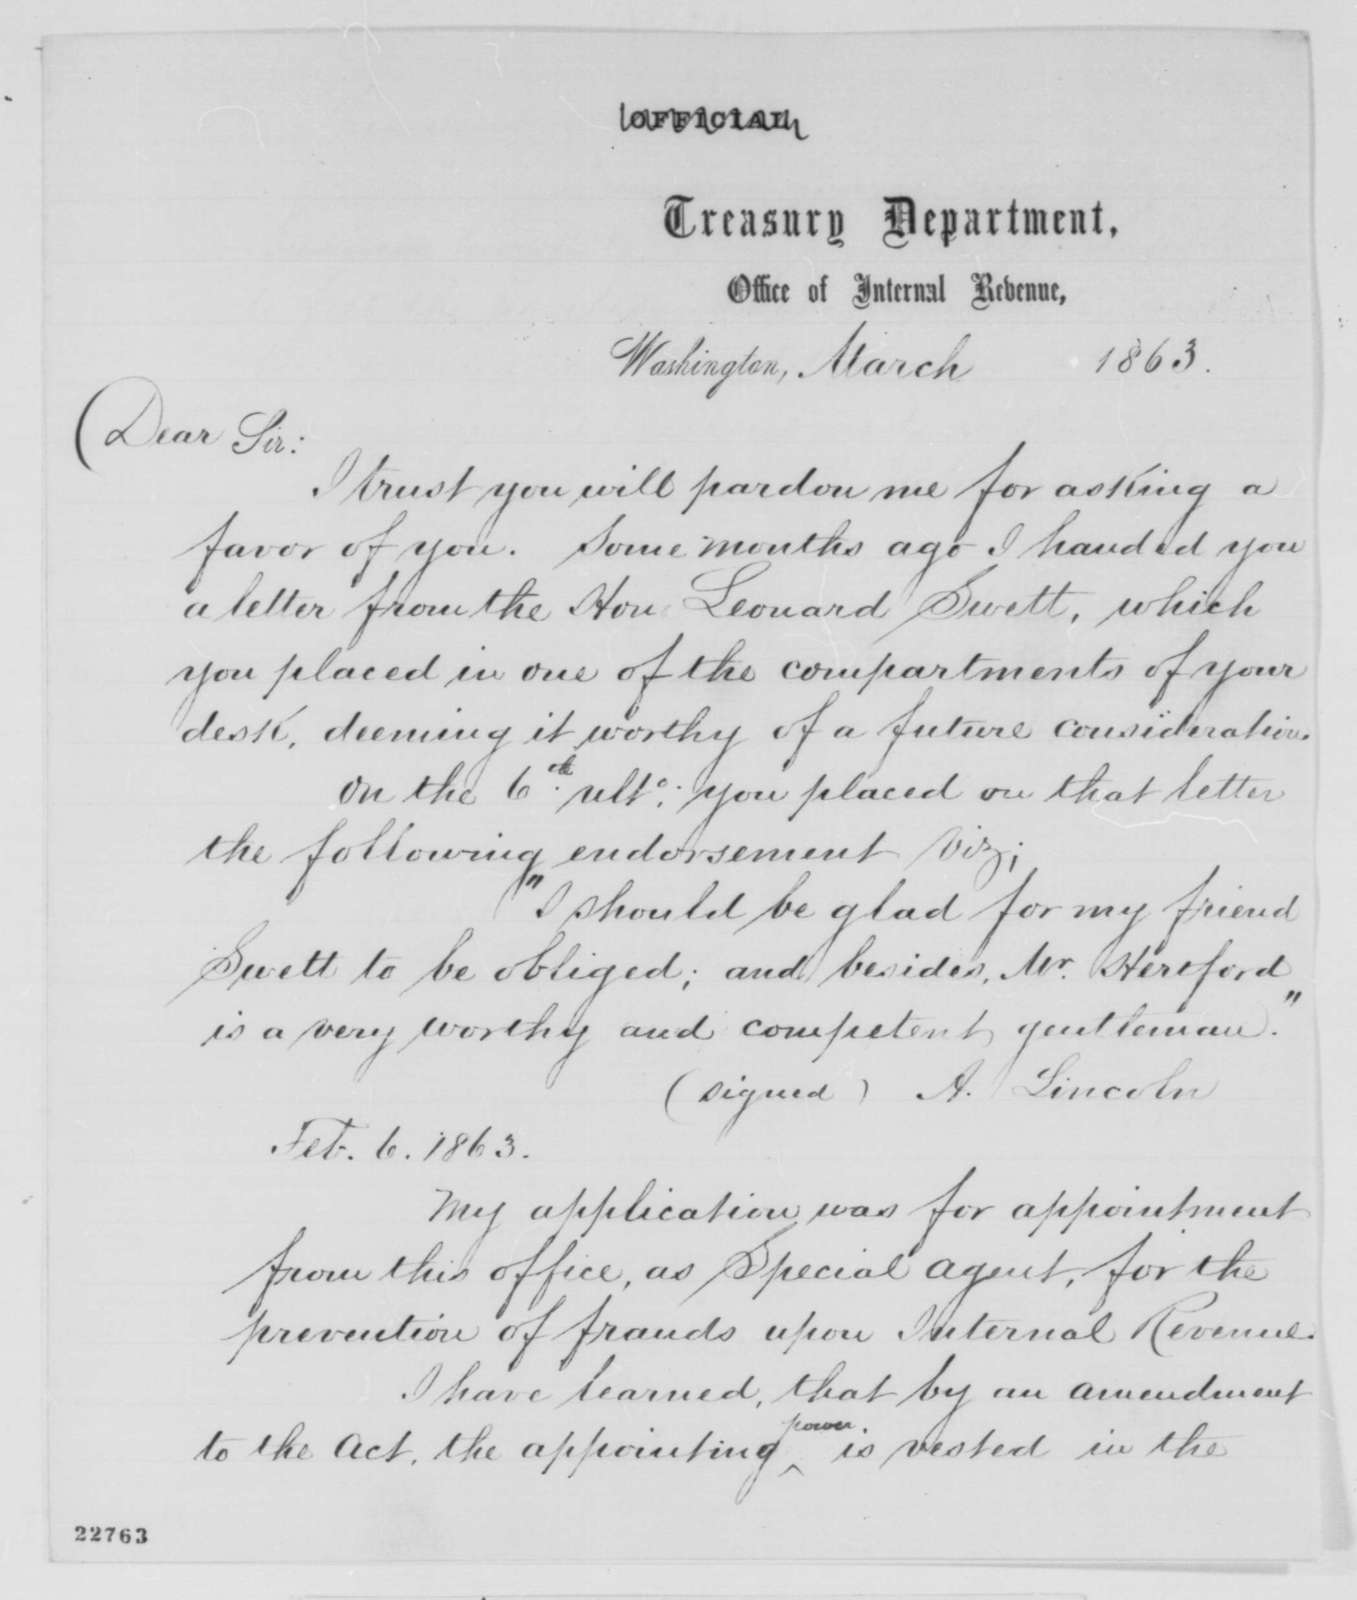 Joseph Hertford to Abraham Lincoln, March 1863  (Seeks office; includes copy of endorsement by Lincoln)